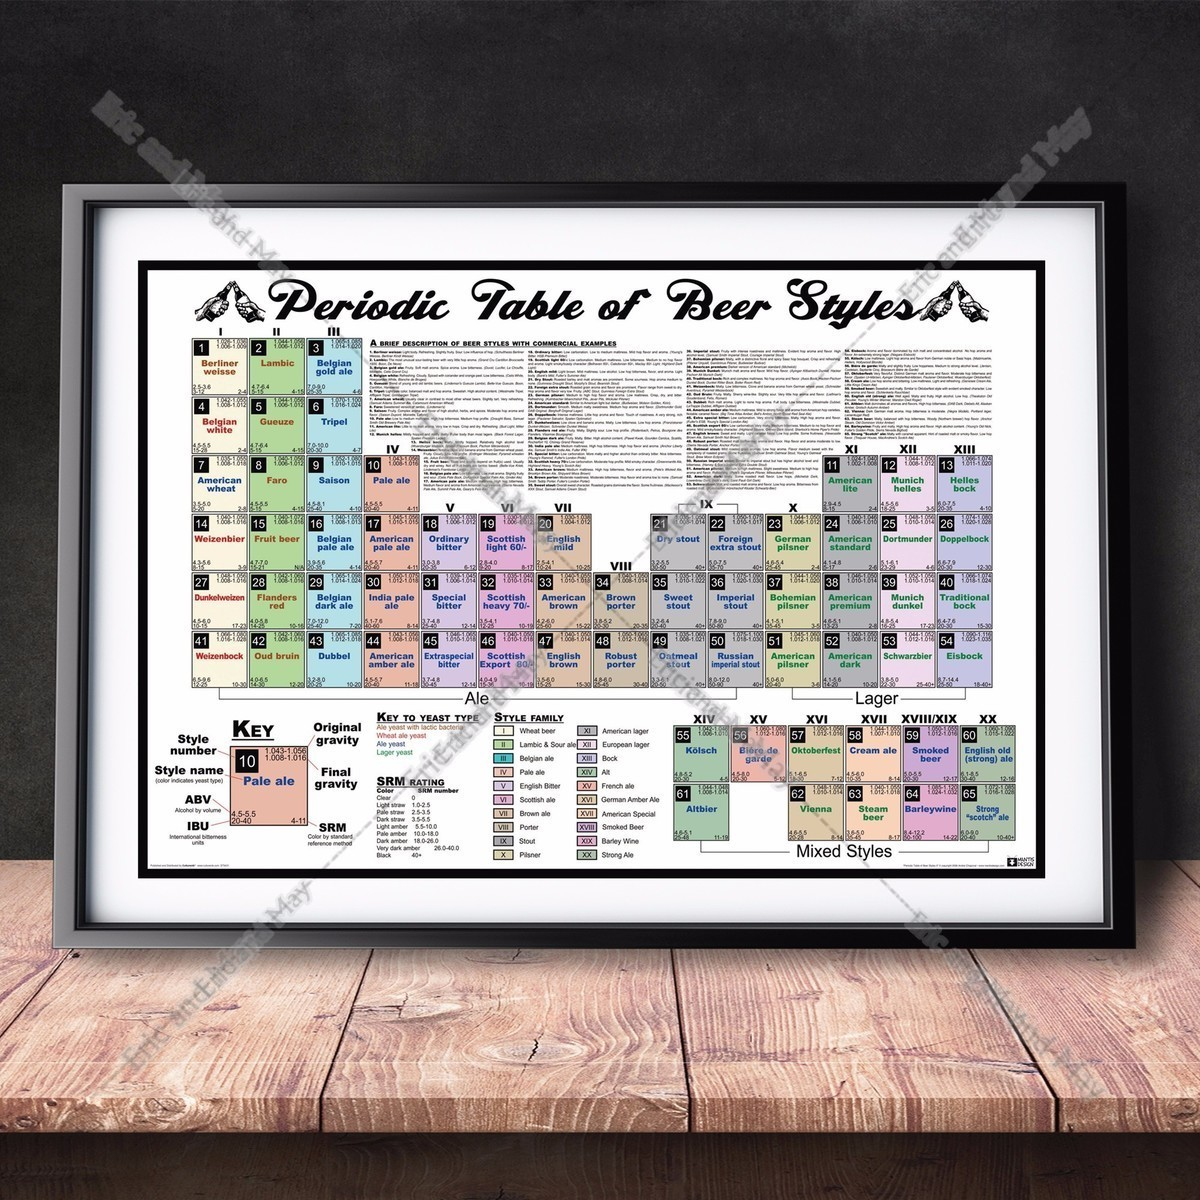 Table english pub table antique periodic table product on alibaba com - Aliexpress Com Buy Periodic Table Of Beer Styles Canvas Art Print Painting Poster Wall Picture For Living Room Decor Home Decorative No Frame From